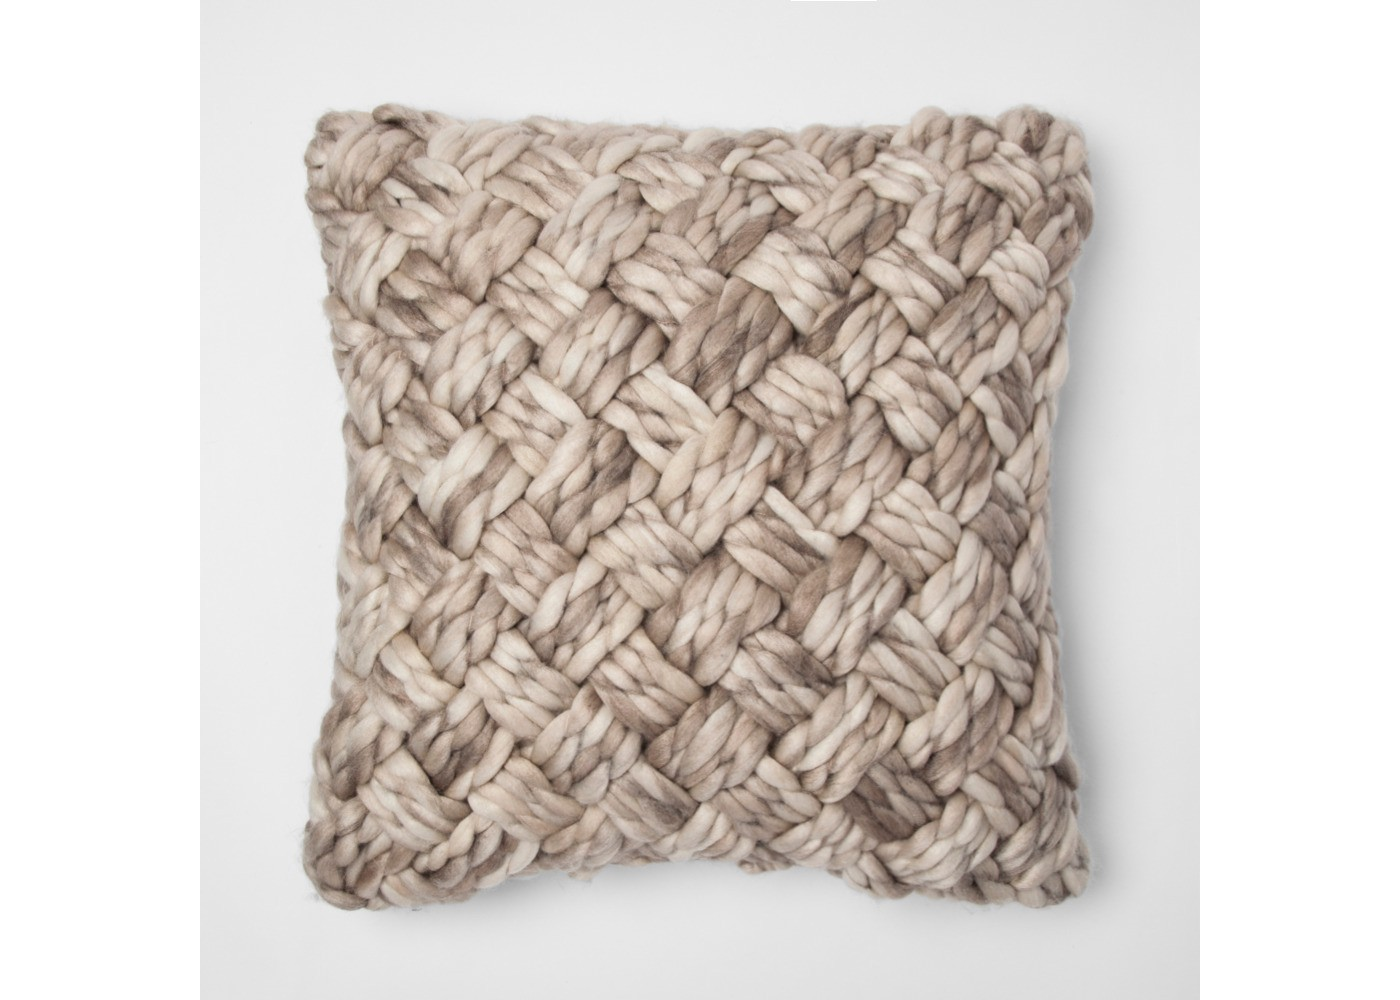 Chunky Woven Pillow